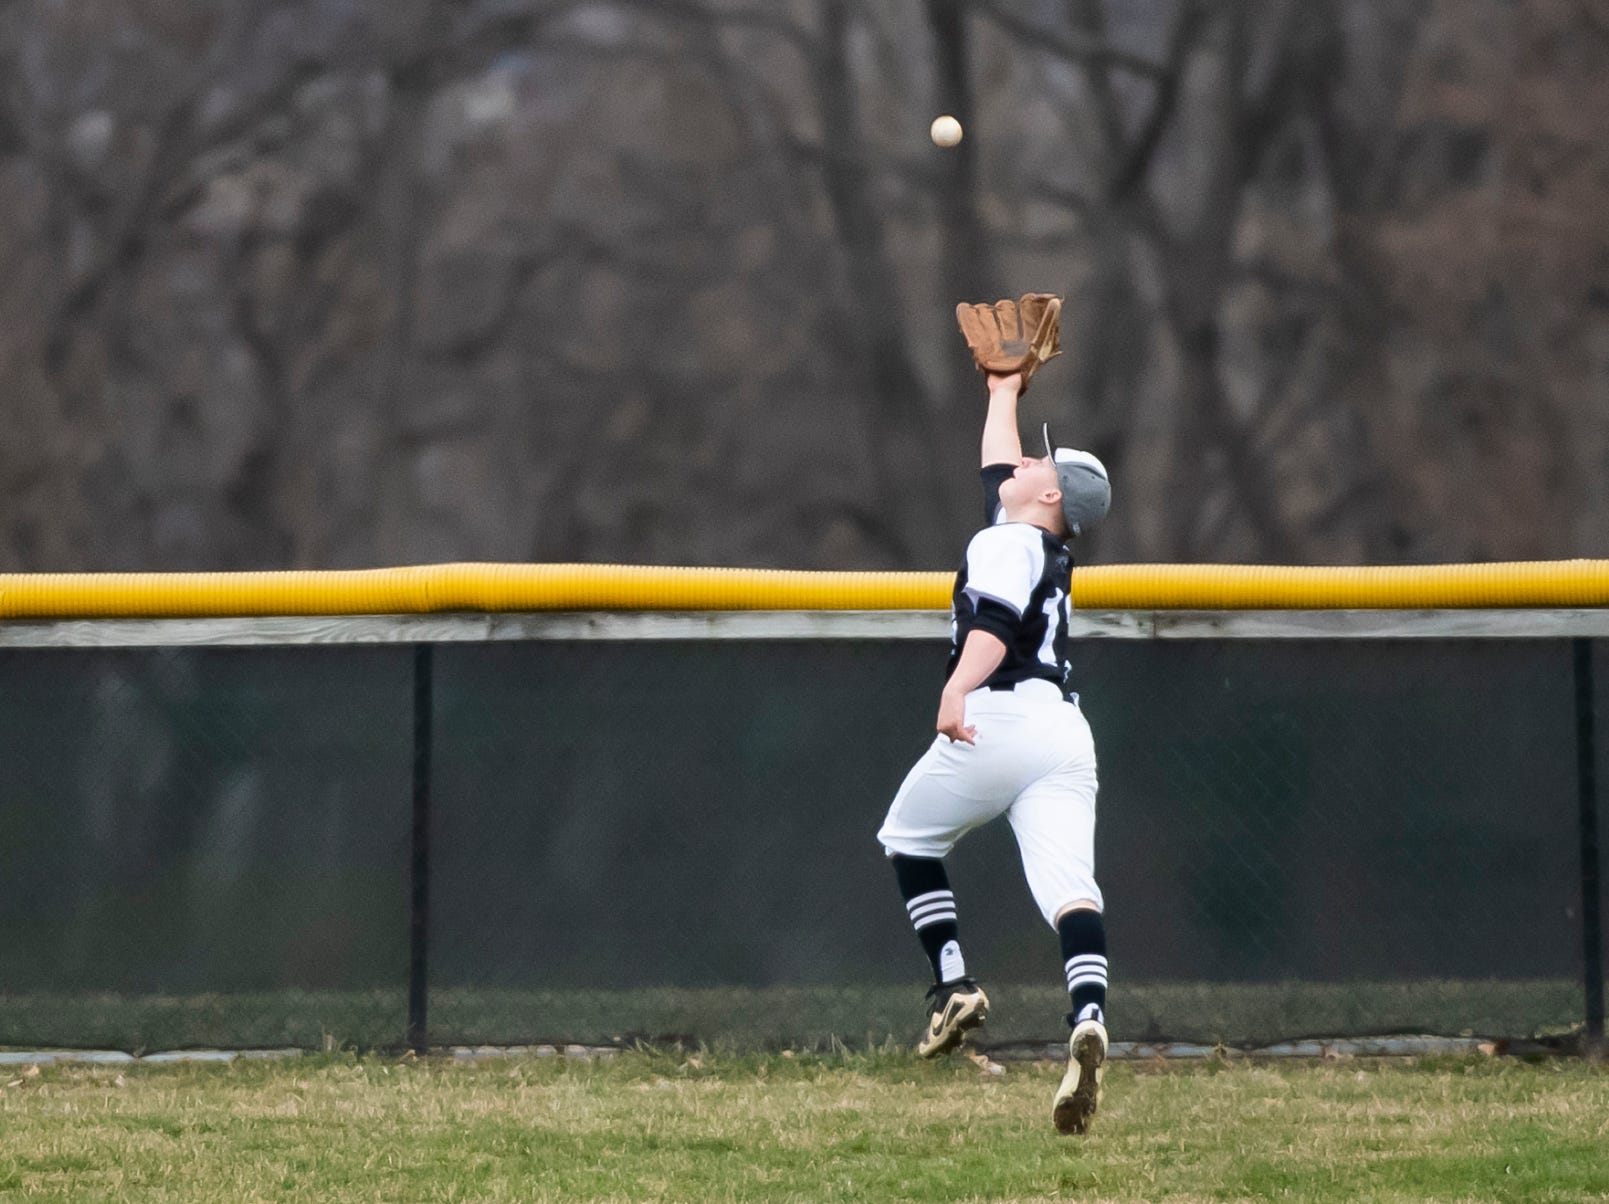 South Western left fielder Ethan Stalnecker comes up just inches short of snagging a deep fly ball during a game against Carlisle in Hanover on Friday, March 29, 2019. The Mustangs won 11-9.